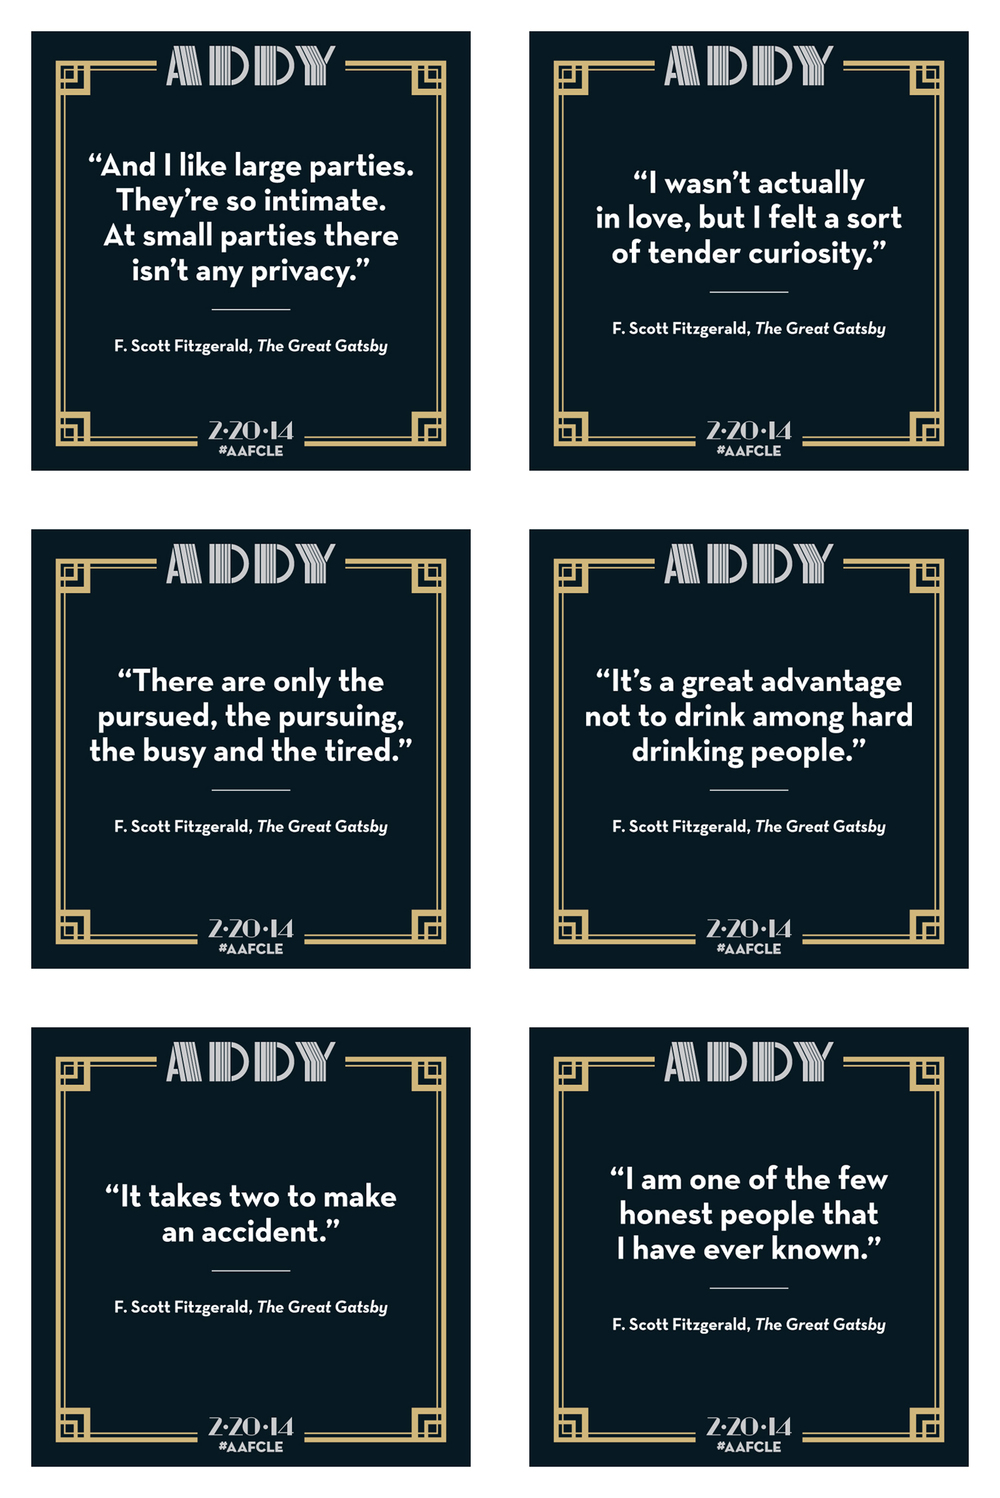 AAF Cleveland — ADDY Social Images